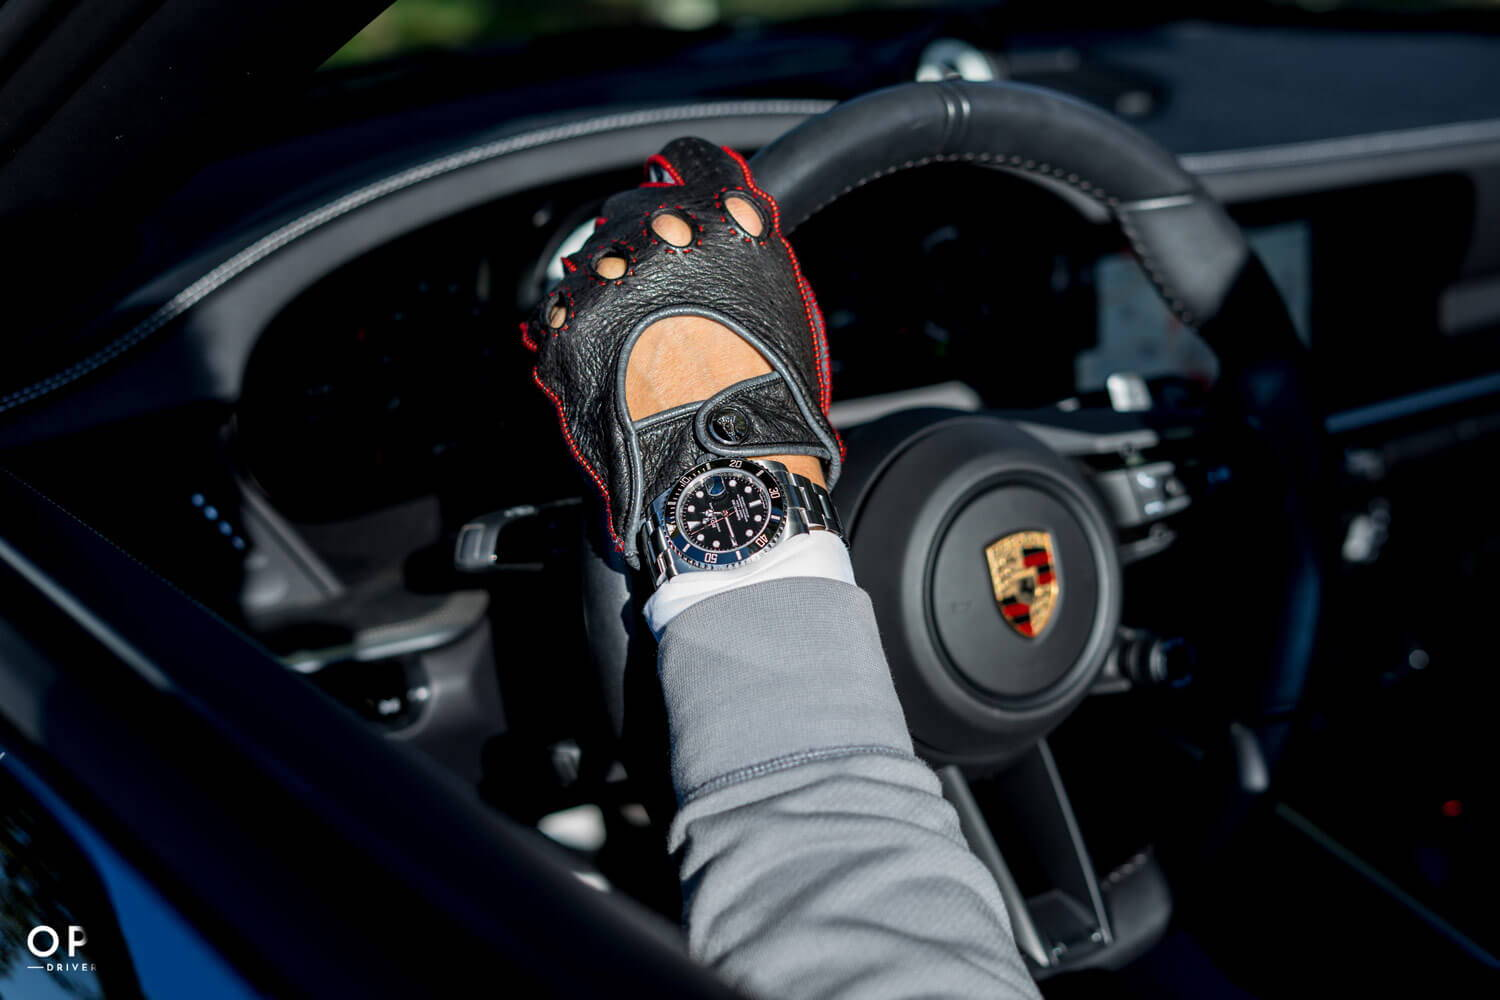 Porsche Driving Gloves